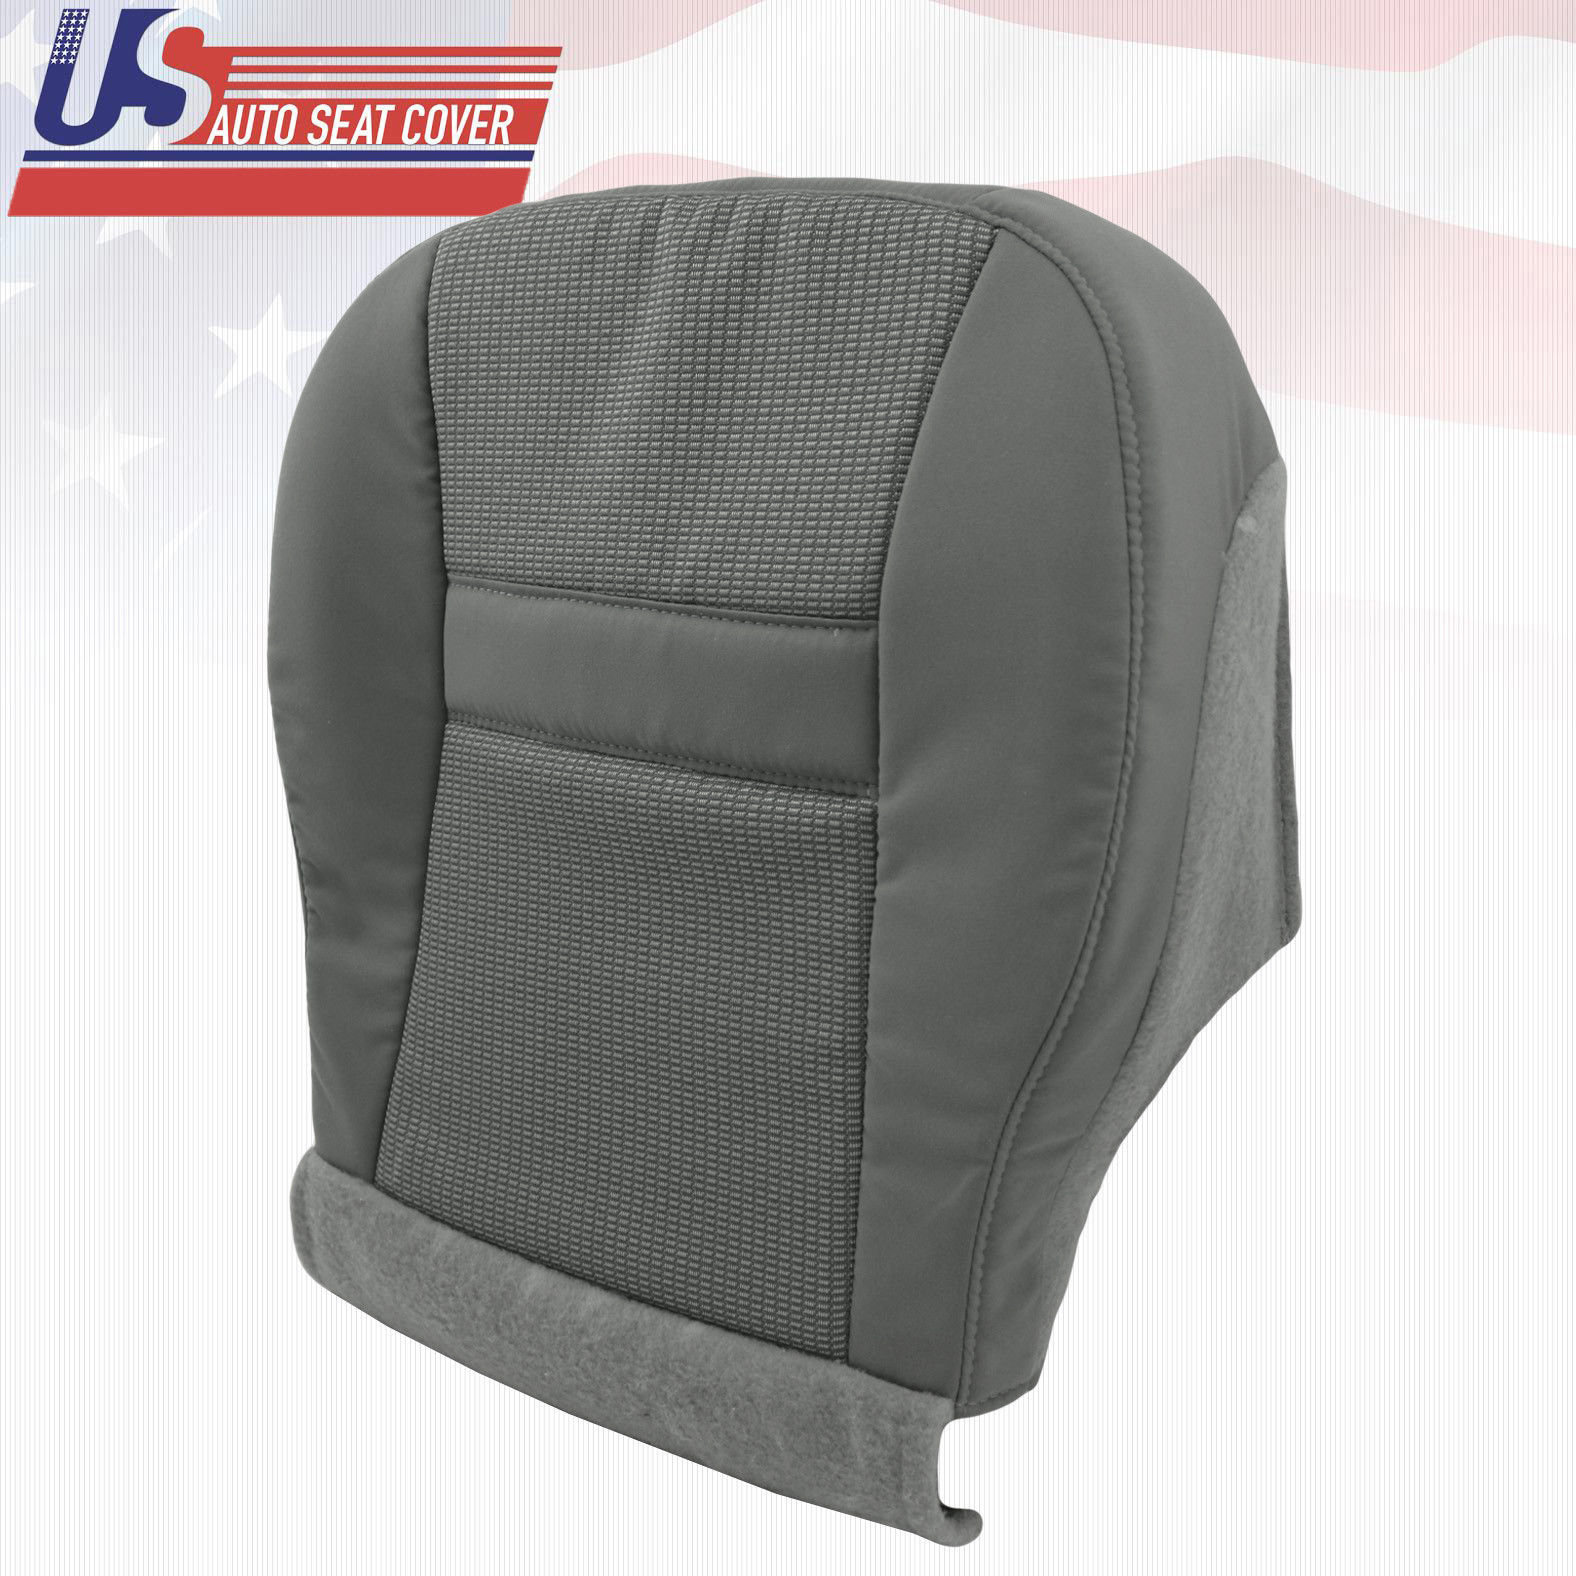 2007 Dodge Ram Front Passenger Side Bottom Fabric Seat Replacement Cover In Gray